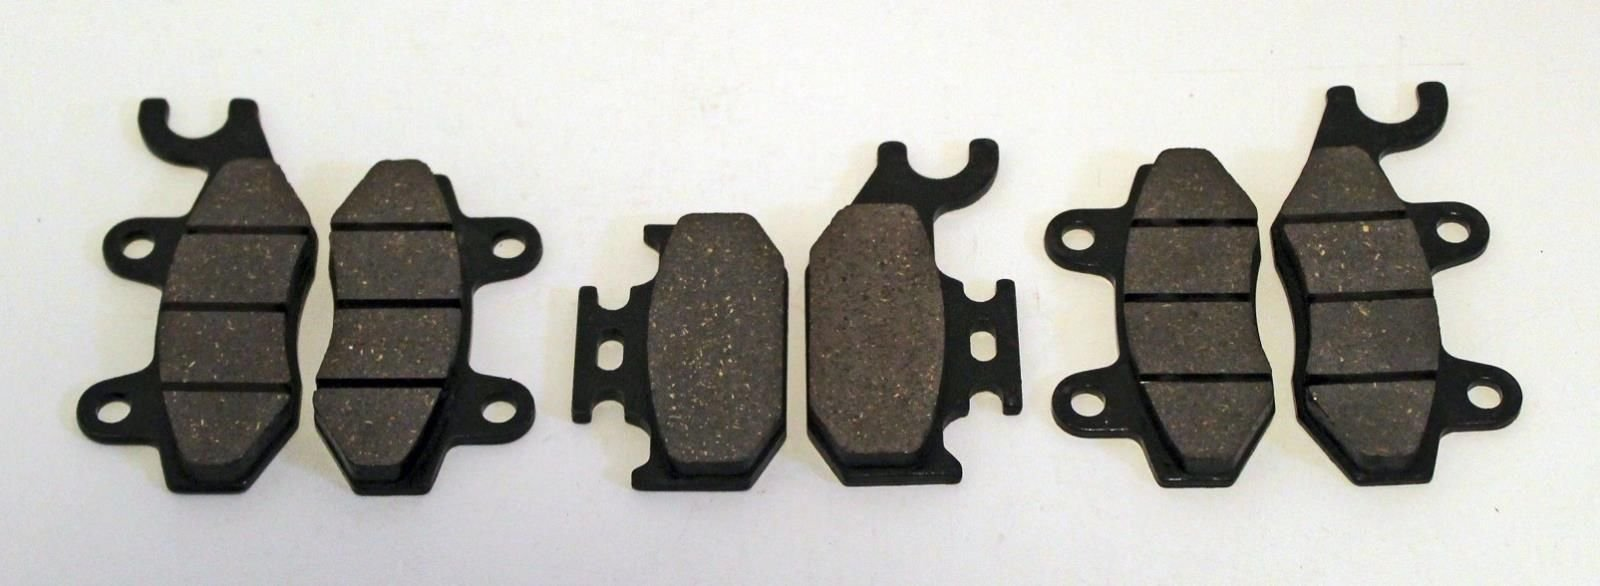 2004 2005 2006 2007 Yamaha YXR660 660 Rhino Front And Rear Brake Pads by CycleATV